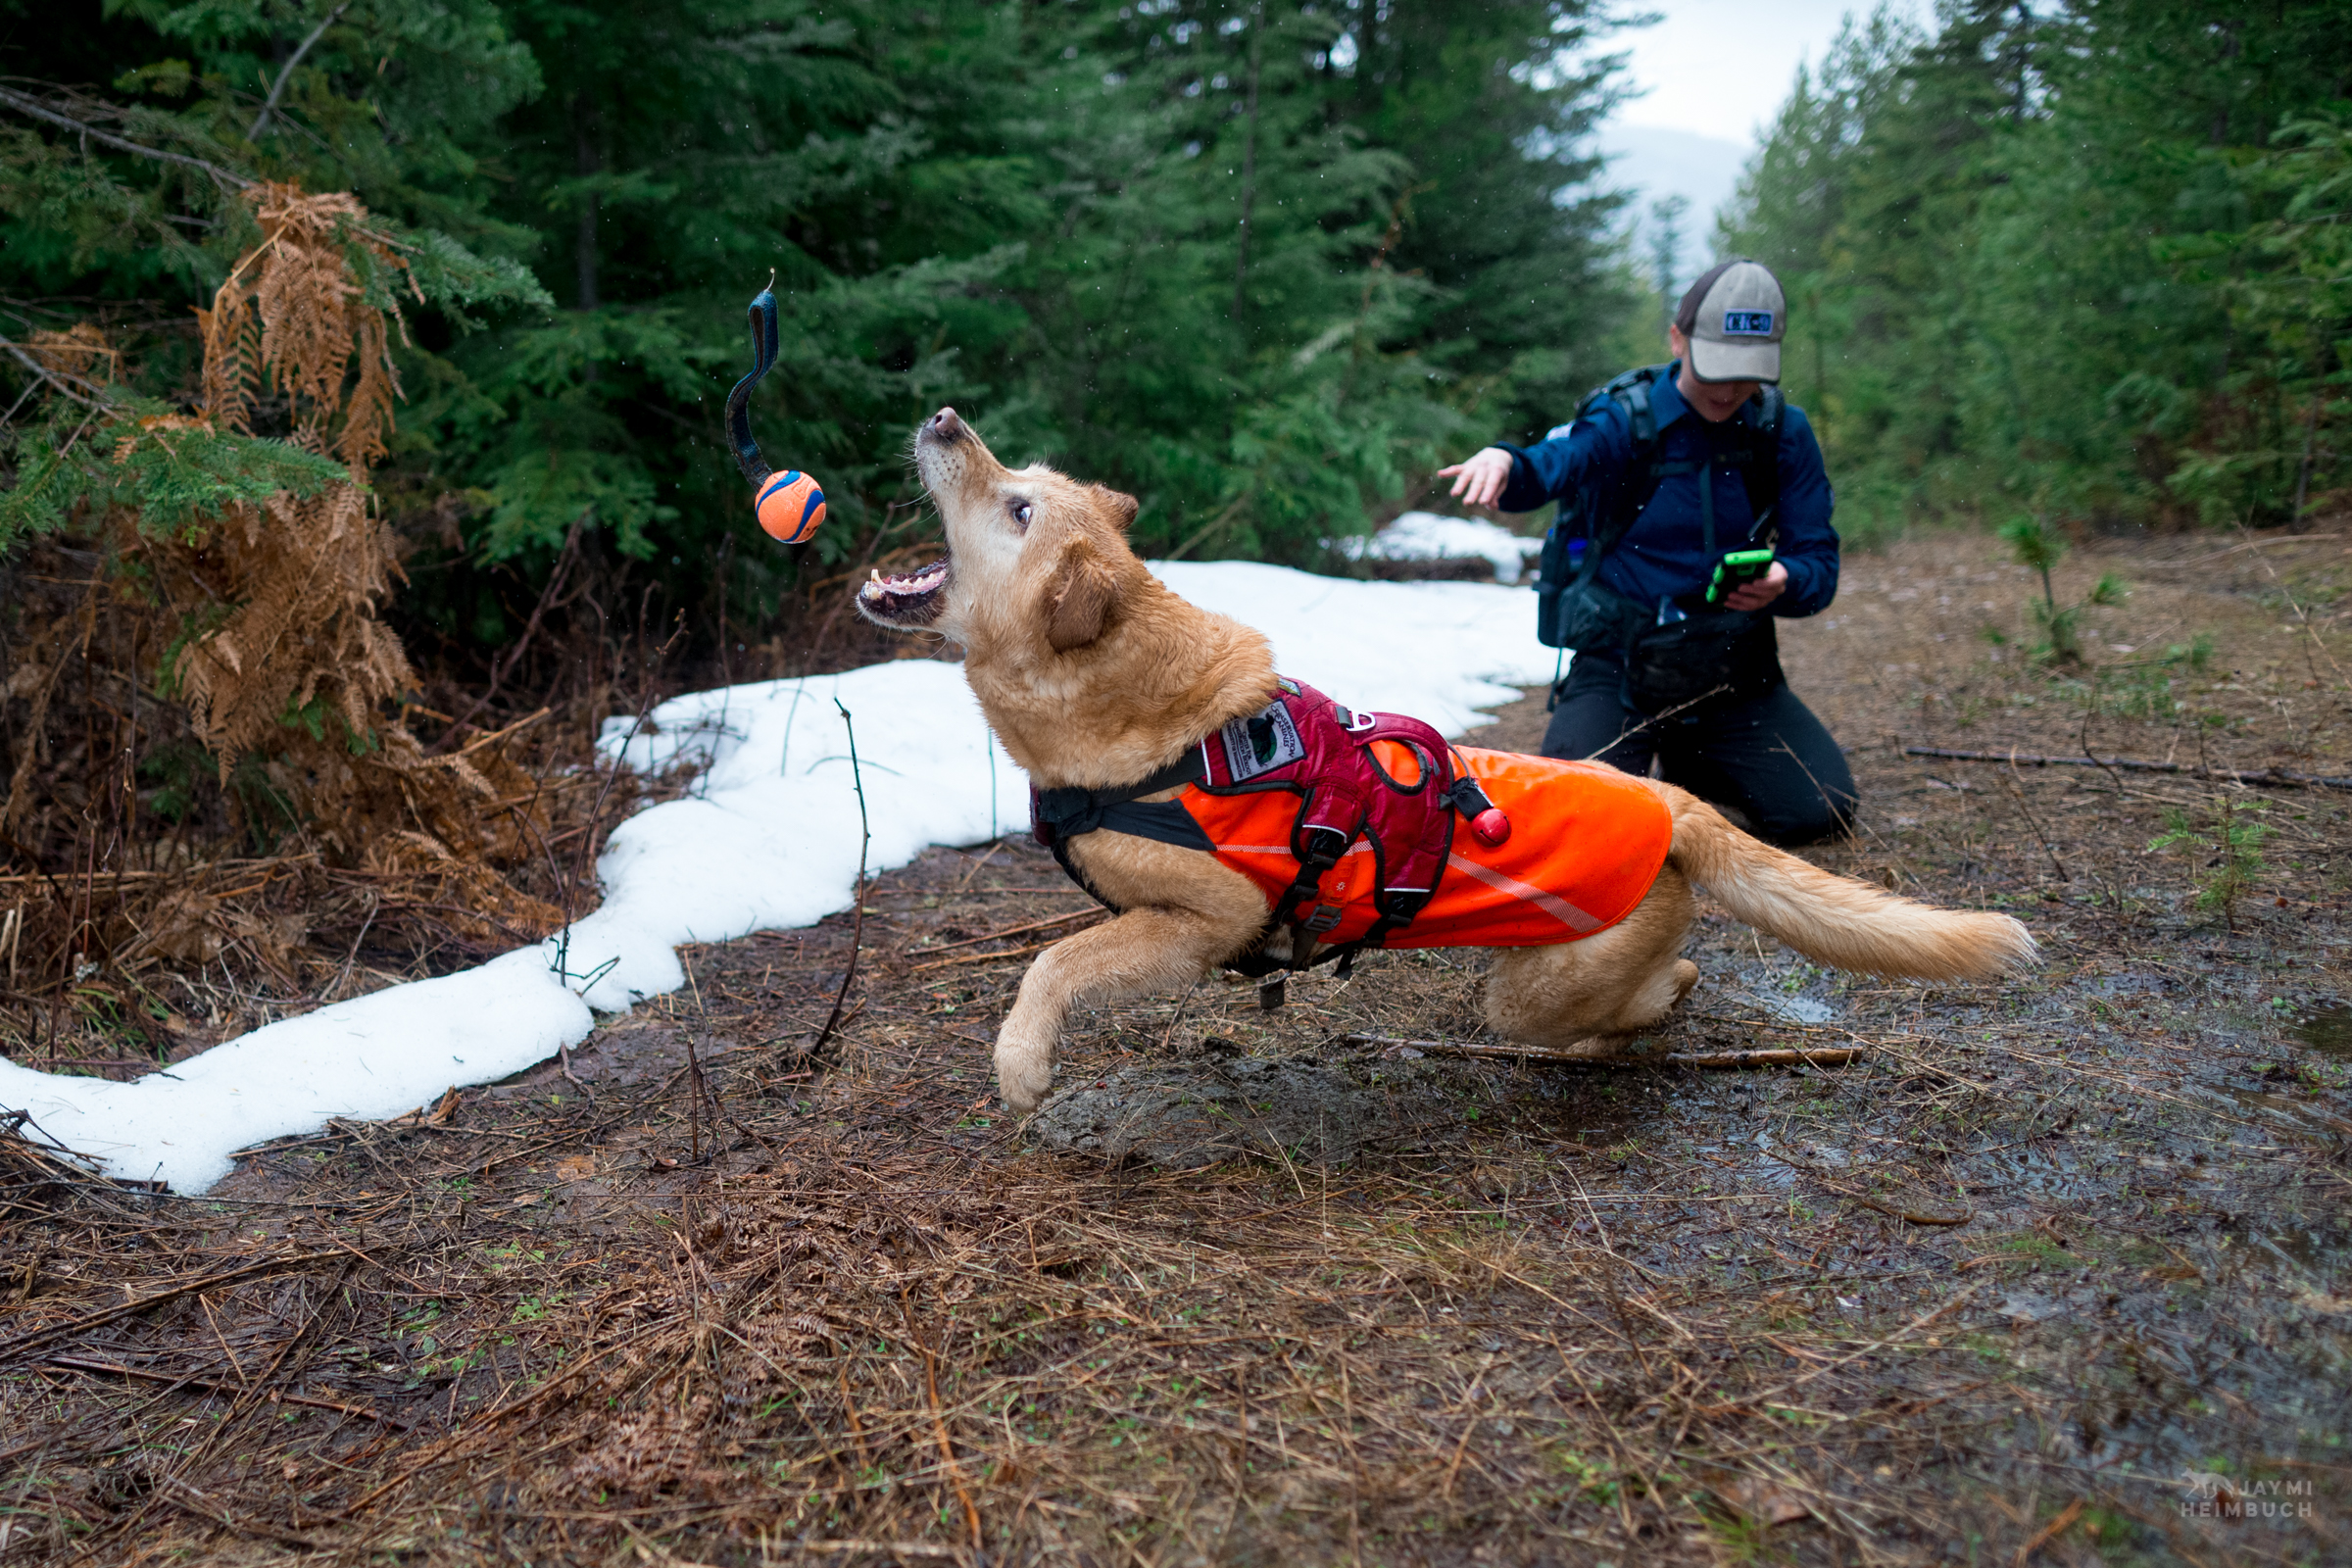 Field technician Rachel Katz recording a sample found by scent detection dog Chester,  and also throwing his reward ball for him - Conservation Canines, University of Washington's Center for Conservation Biology, Washington